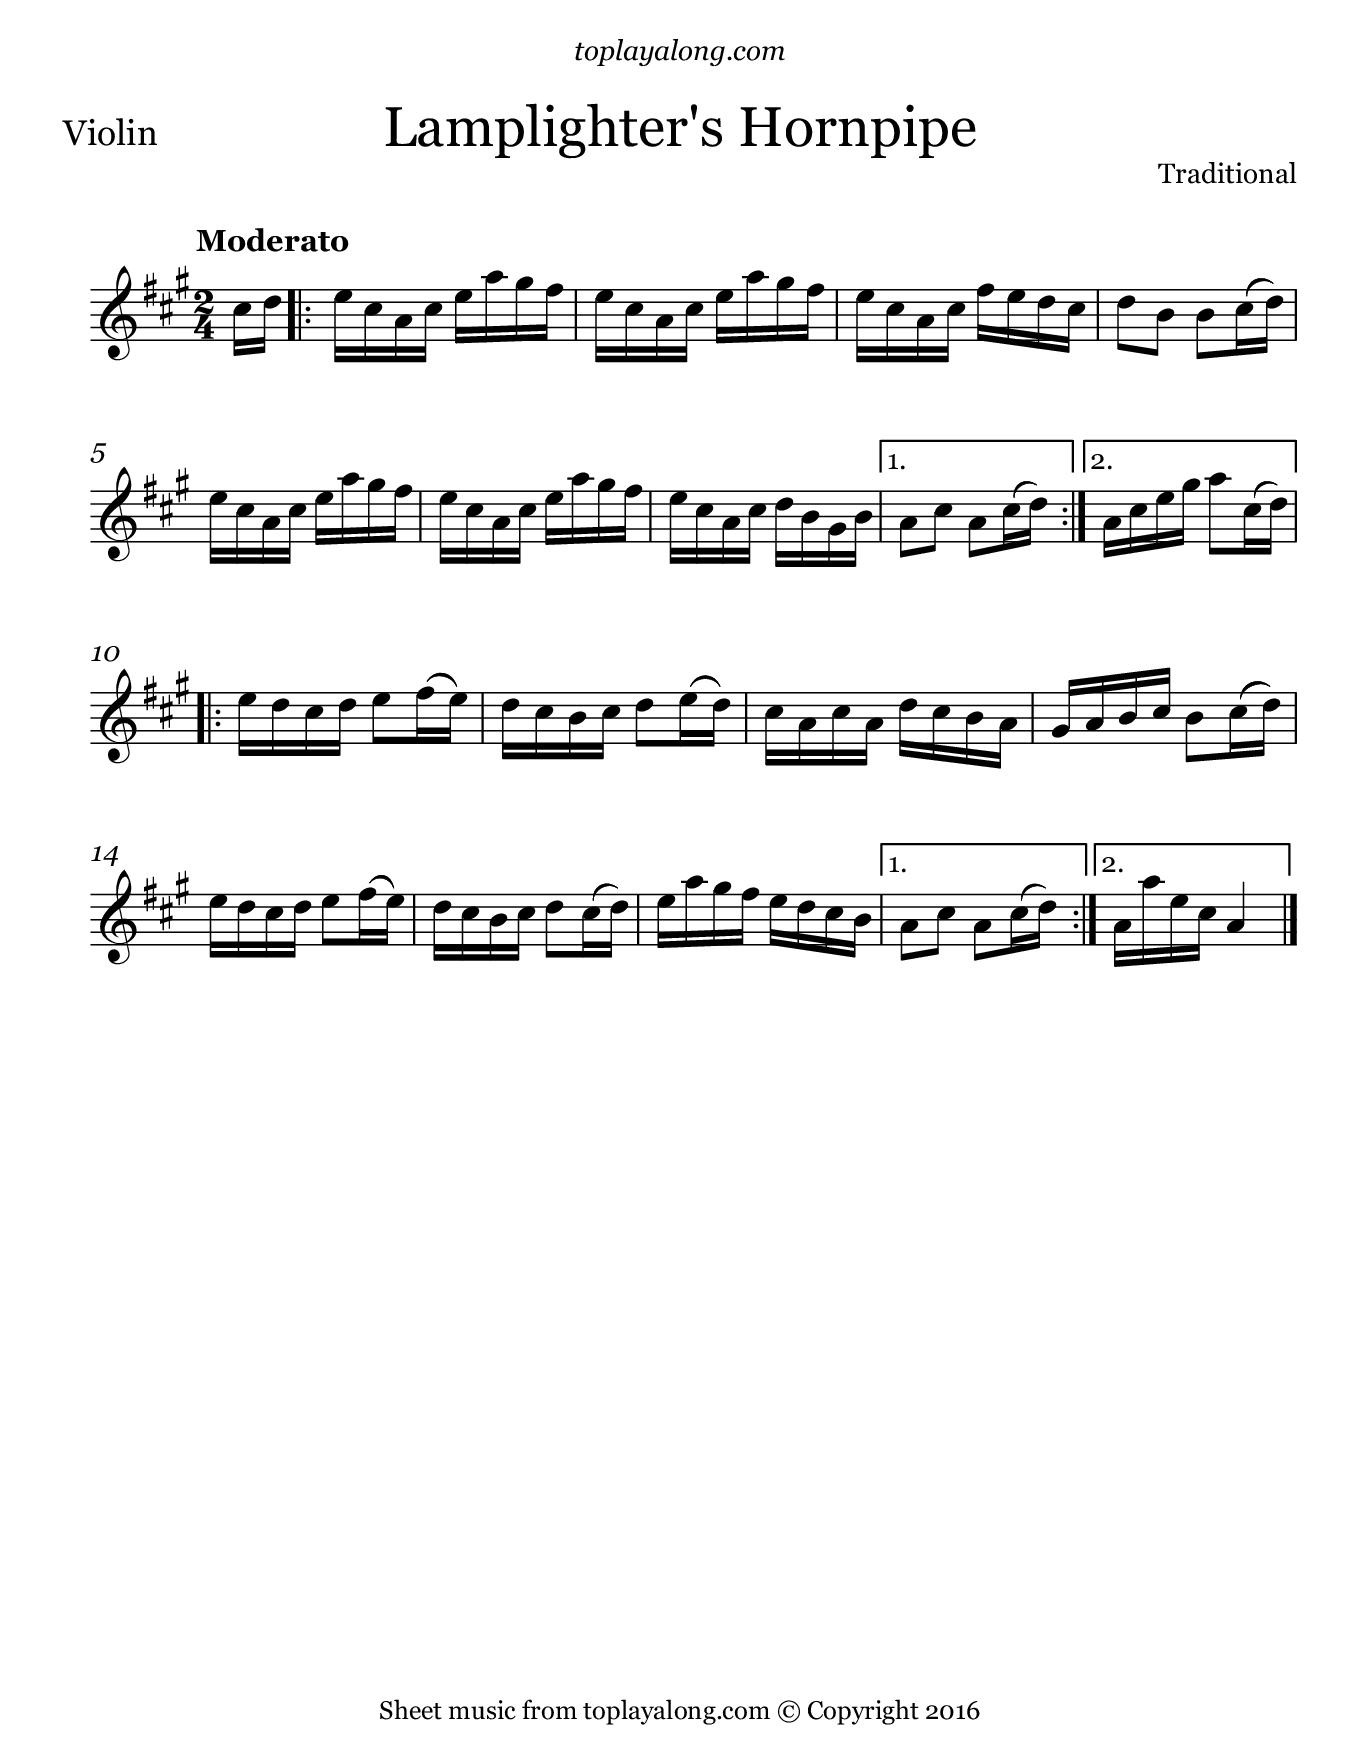 Lamplighter's Hornpipe. Sheet music for Violin, page 1.